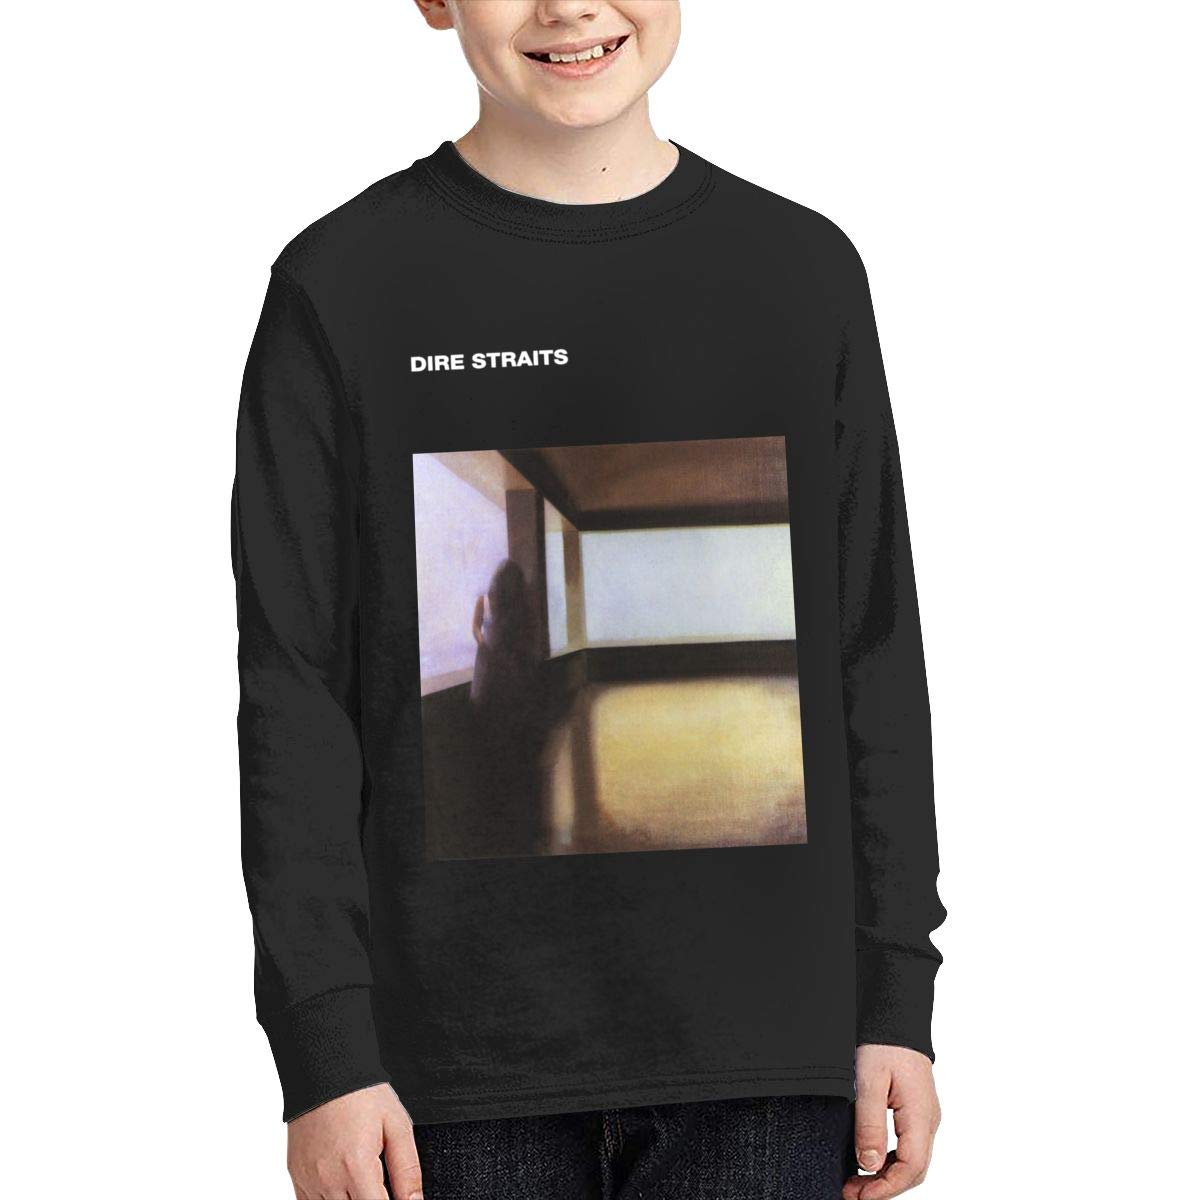 MichaelHazzard Dire Straits Youth Wearable Long Sleeve Crewneck Tee T-Shirt for Boys and Girls